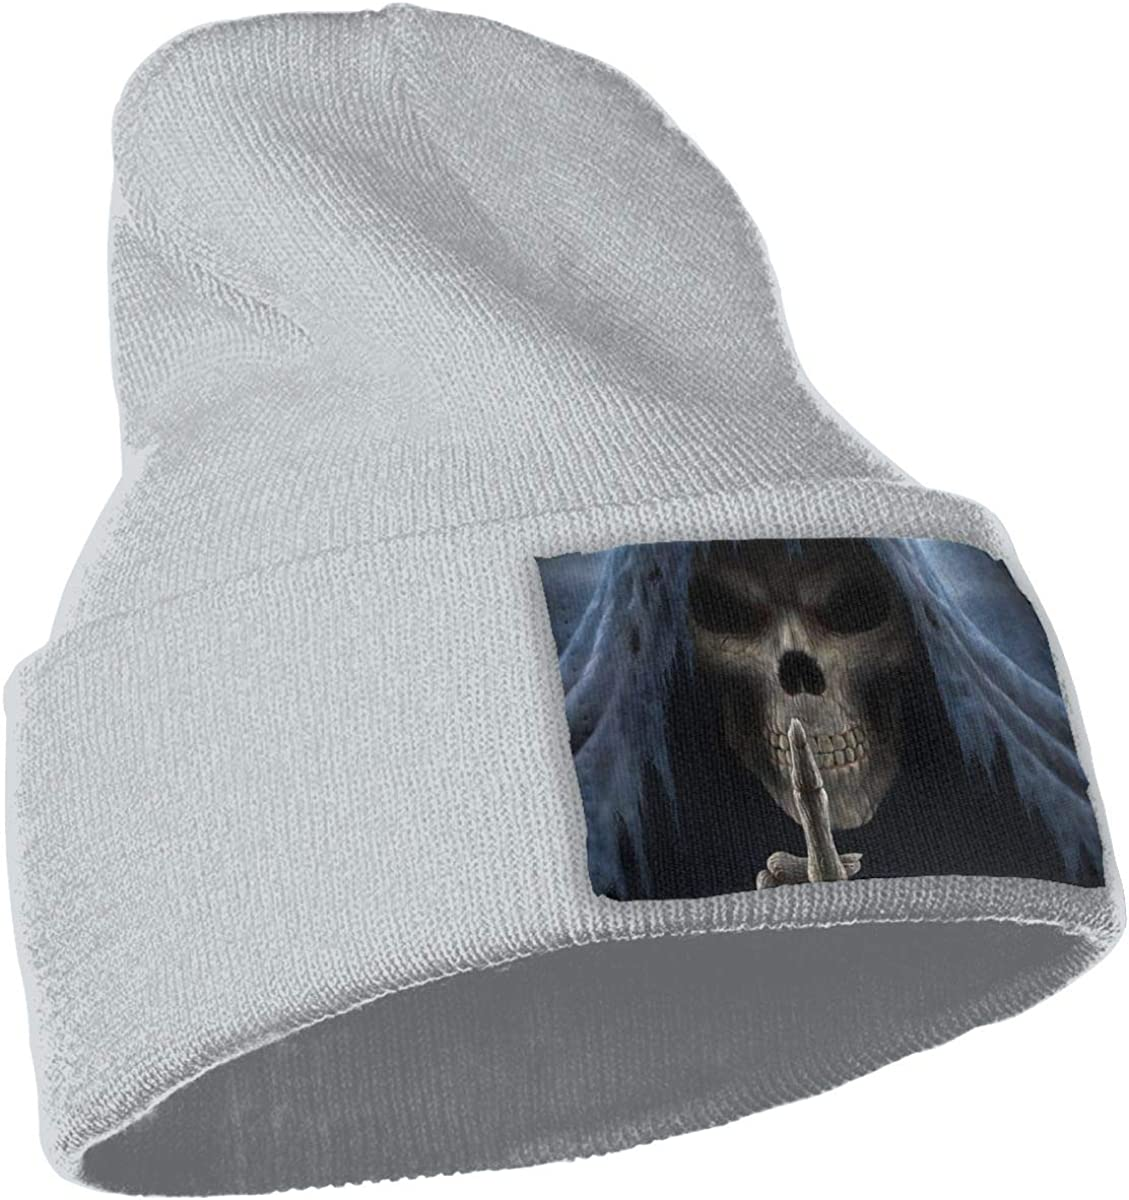 Unisex Beanie Cap Skull Middle Finger Fall Winter Cuffed Knit Hat Warm Baggy Slouchy Chunky Skully Hats